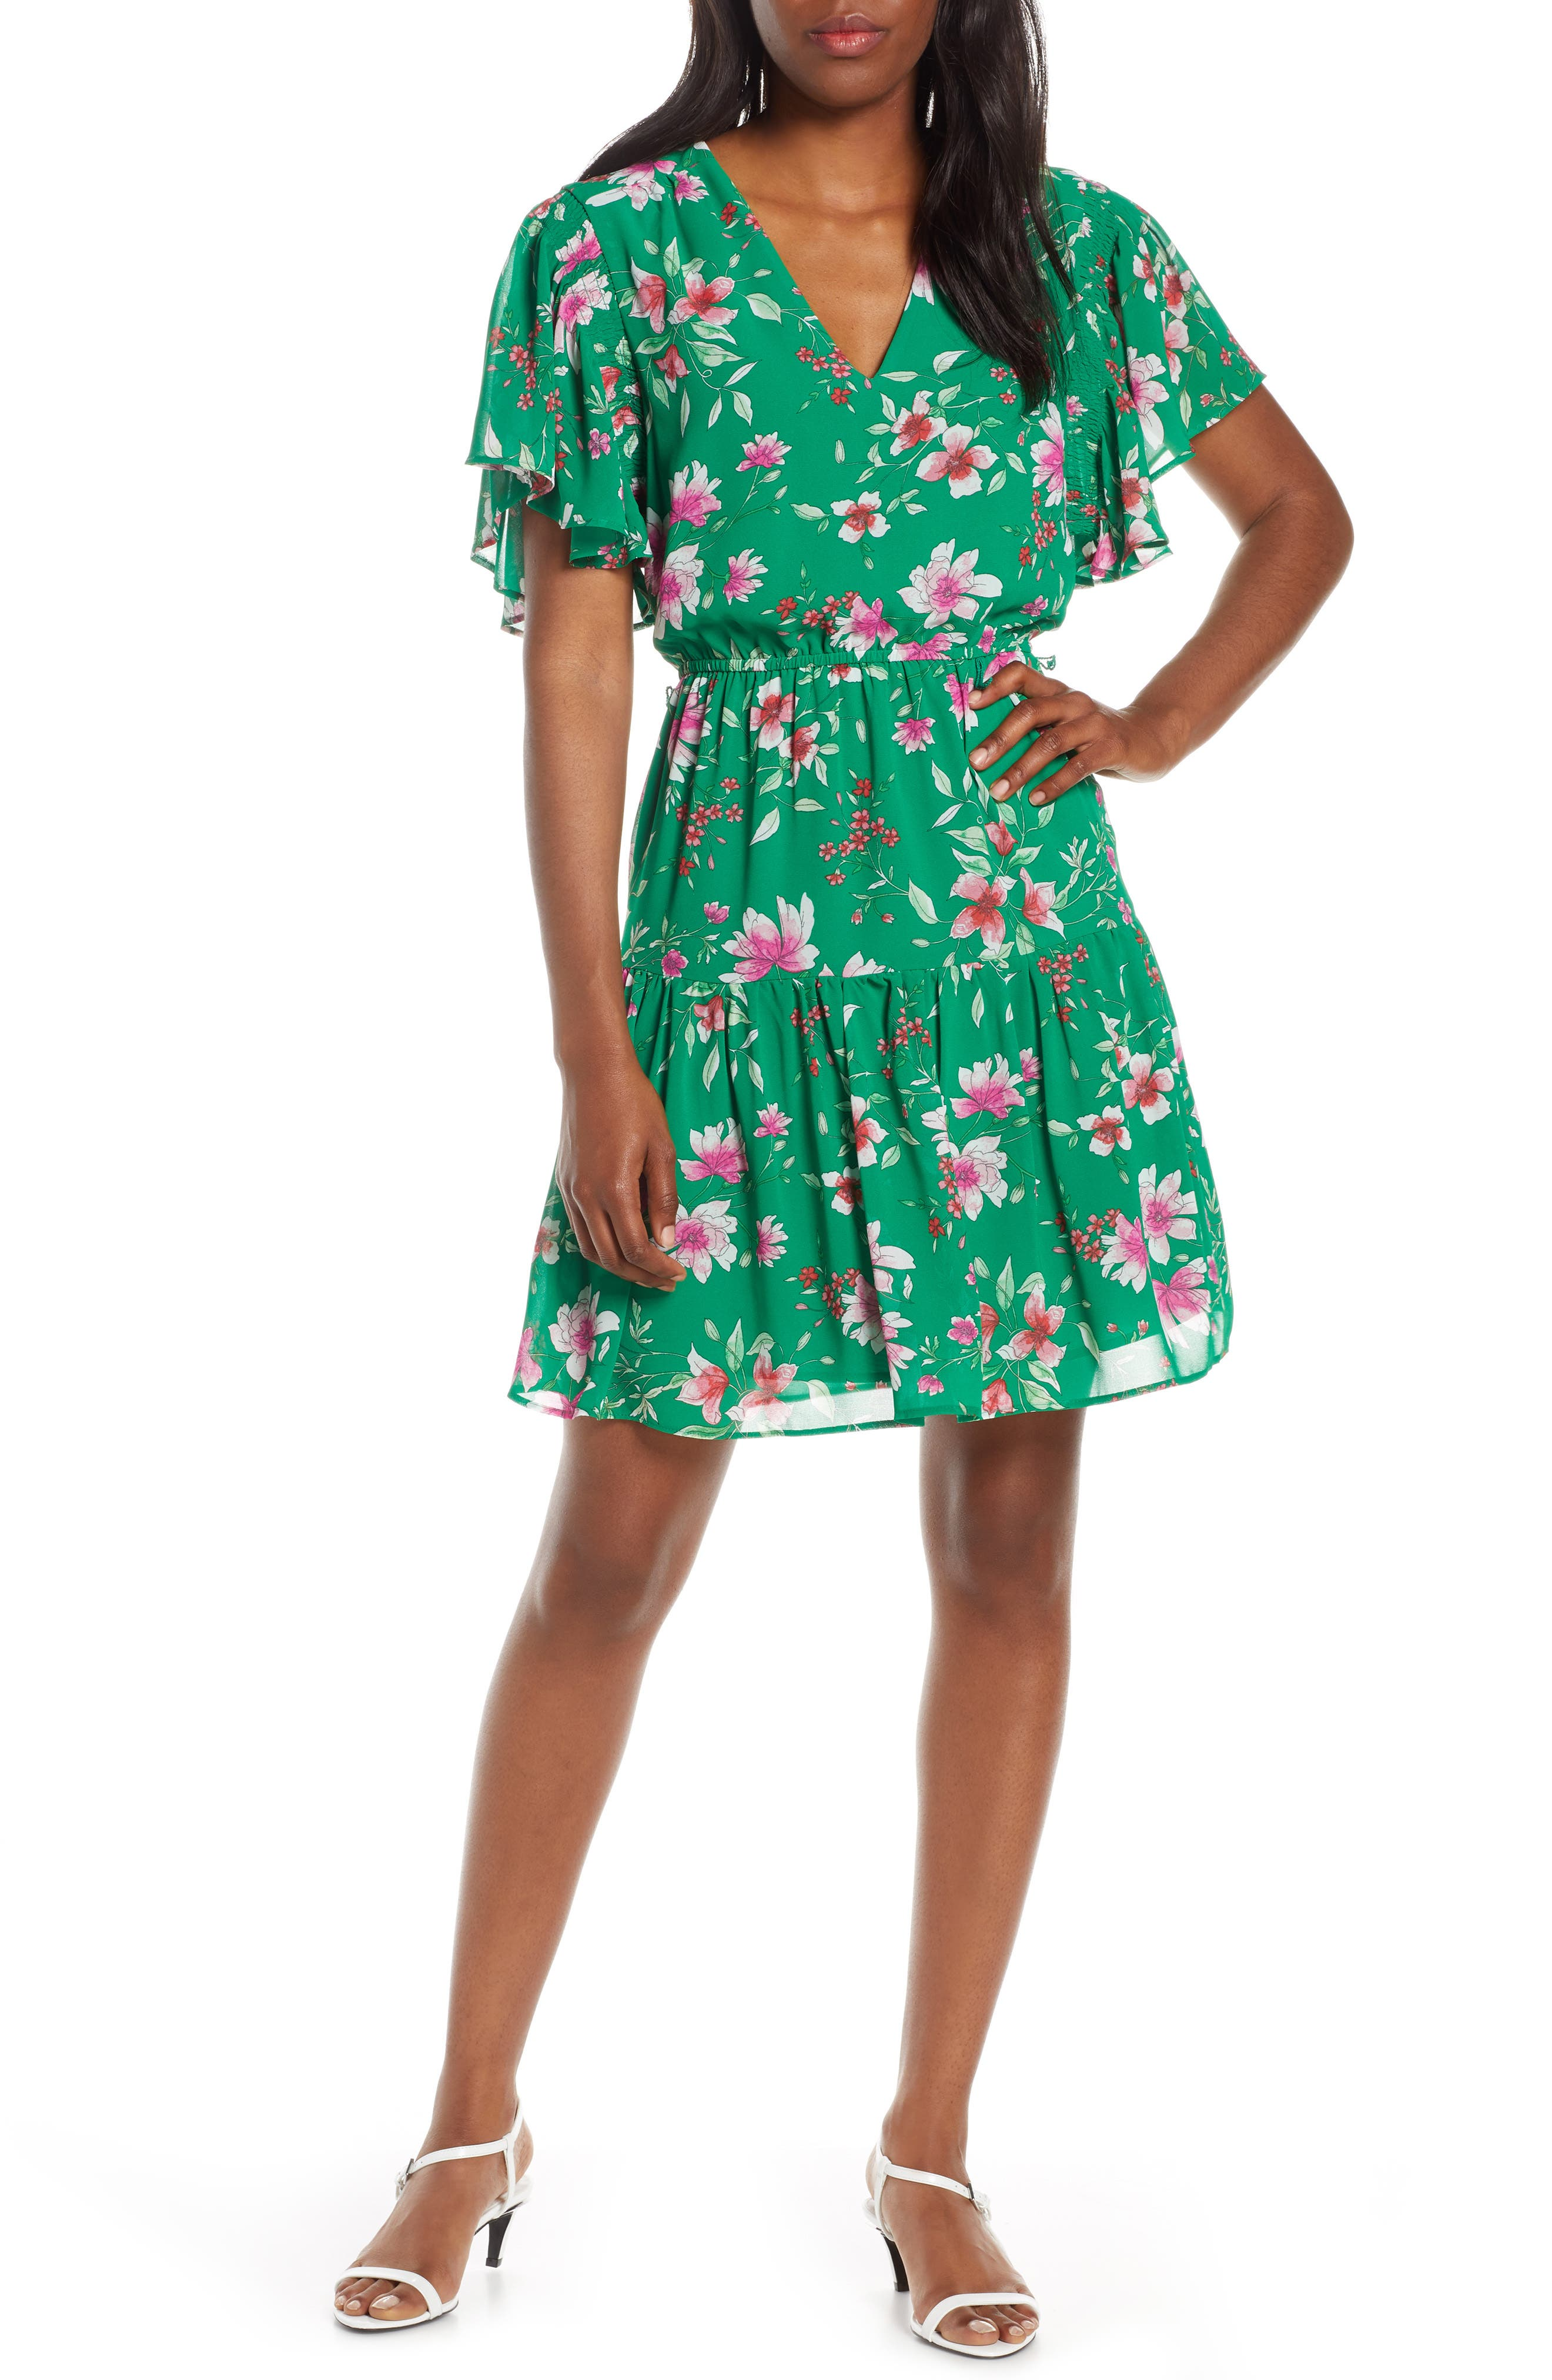 Vince Camuto Floral Print Chiffon Dress, Green